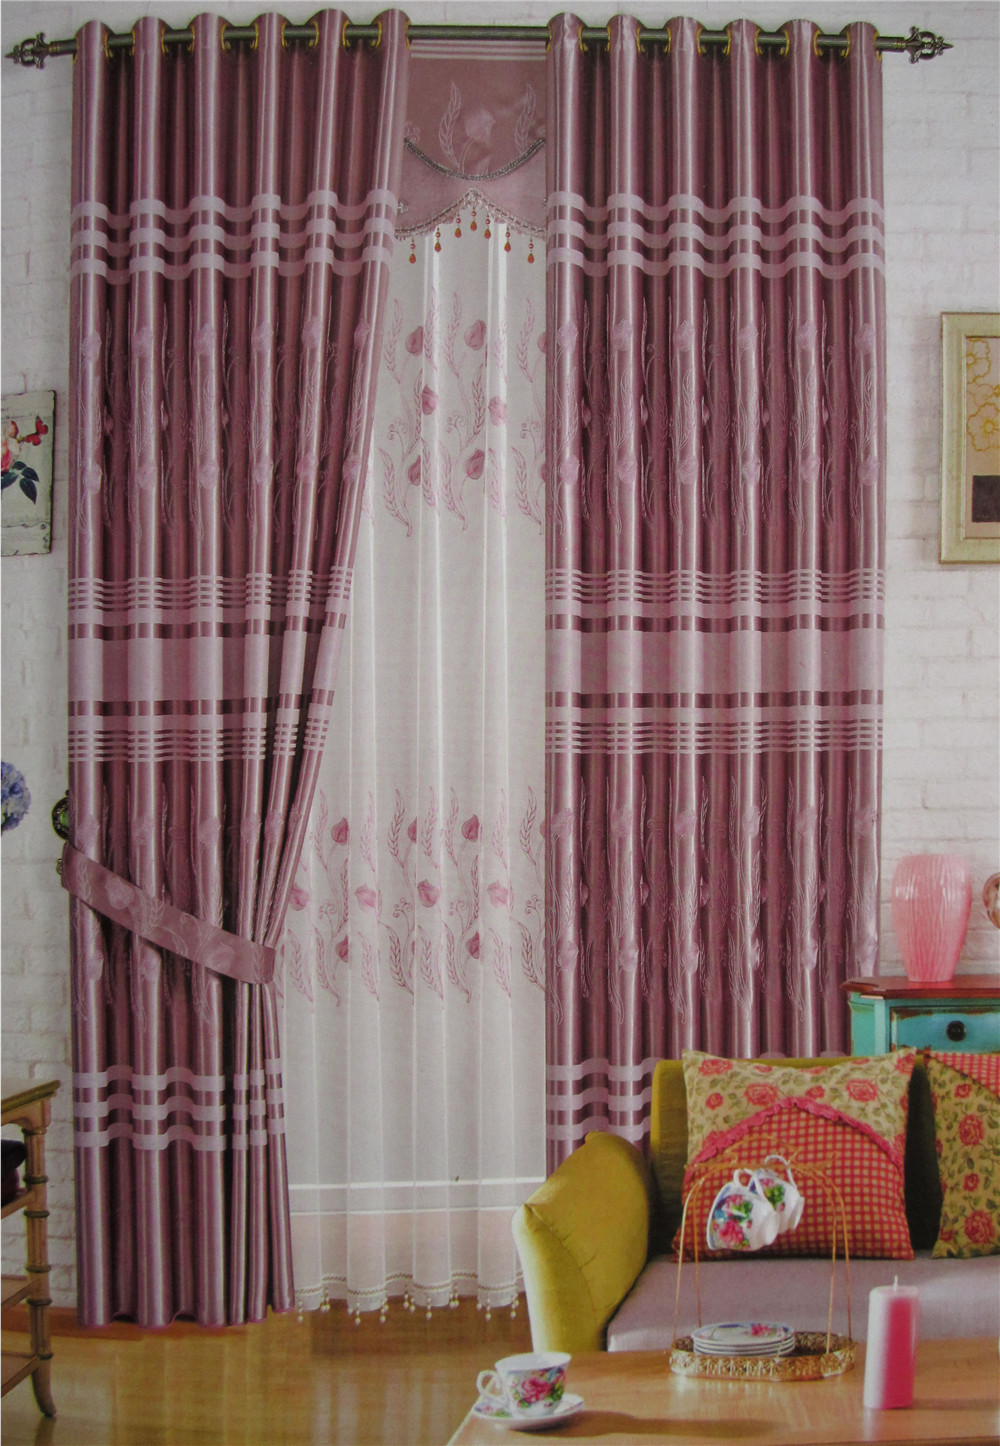 Living Room Curtains Bedroom Curtains L009127 Curtain Custom Made Ready Made Curtains For Widows